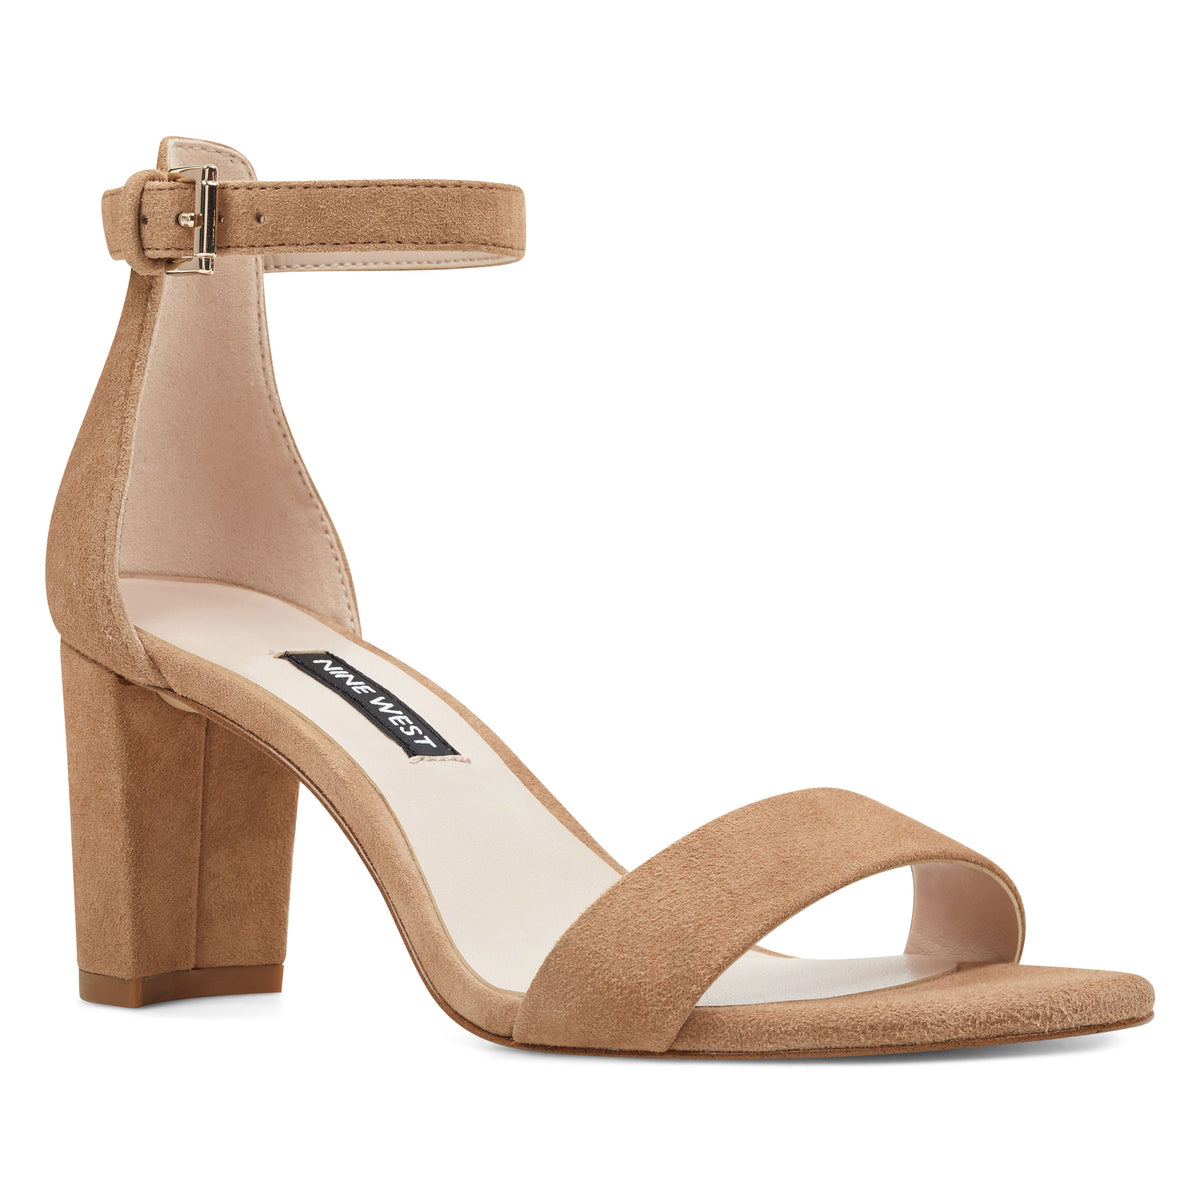 pruce-ankle-strap-block-heel-sandals-in-latte-suede